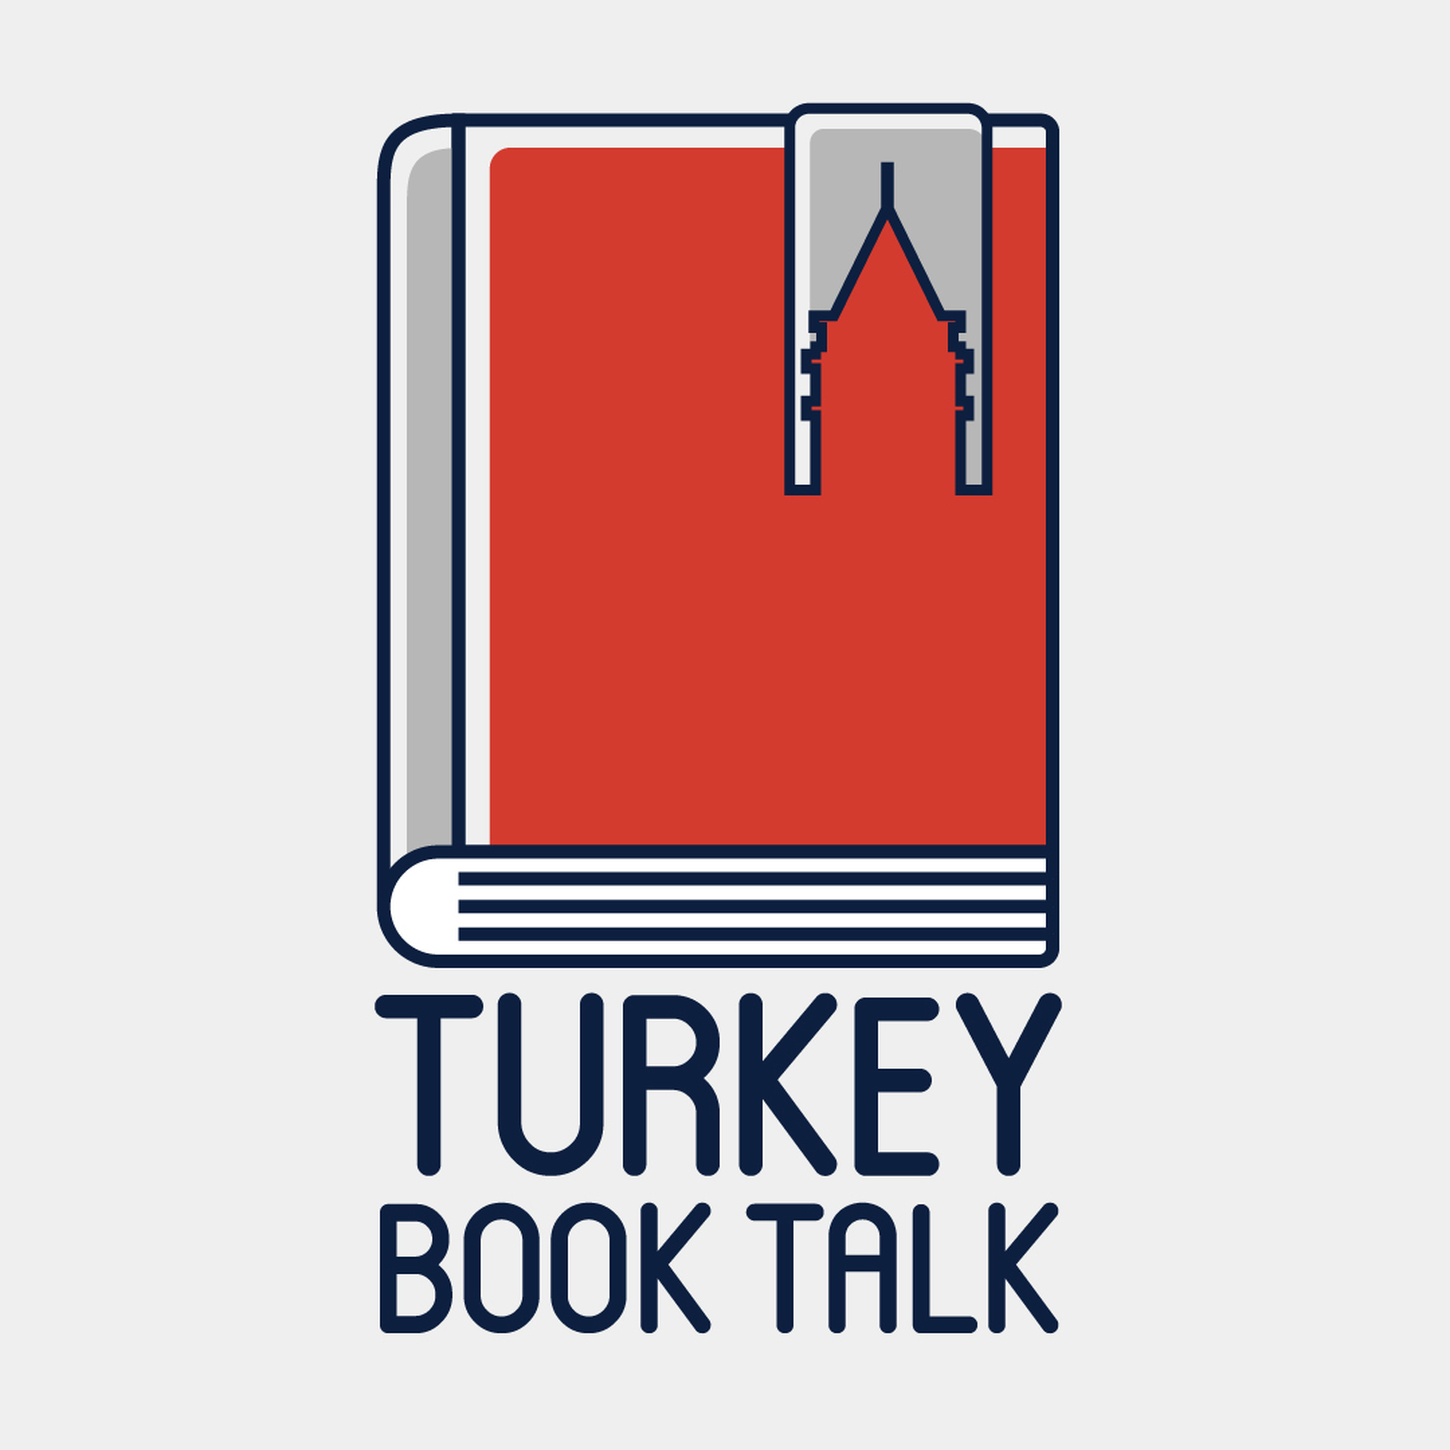 Turkey Book Talk